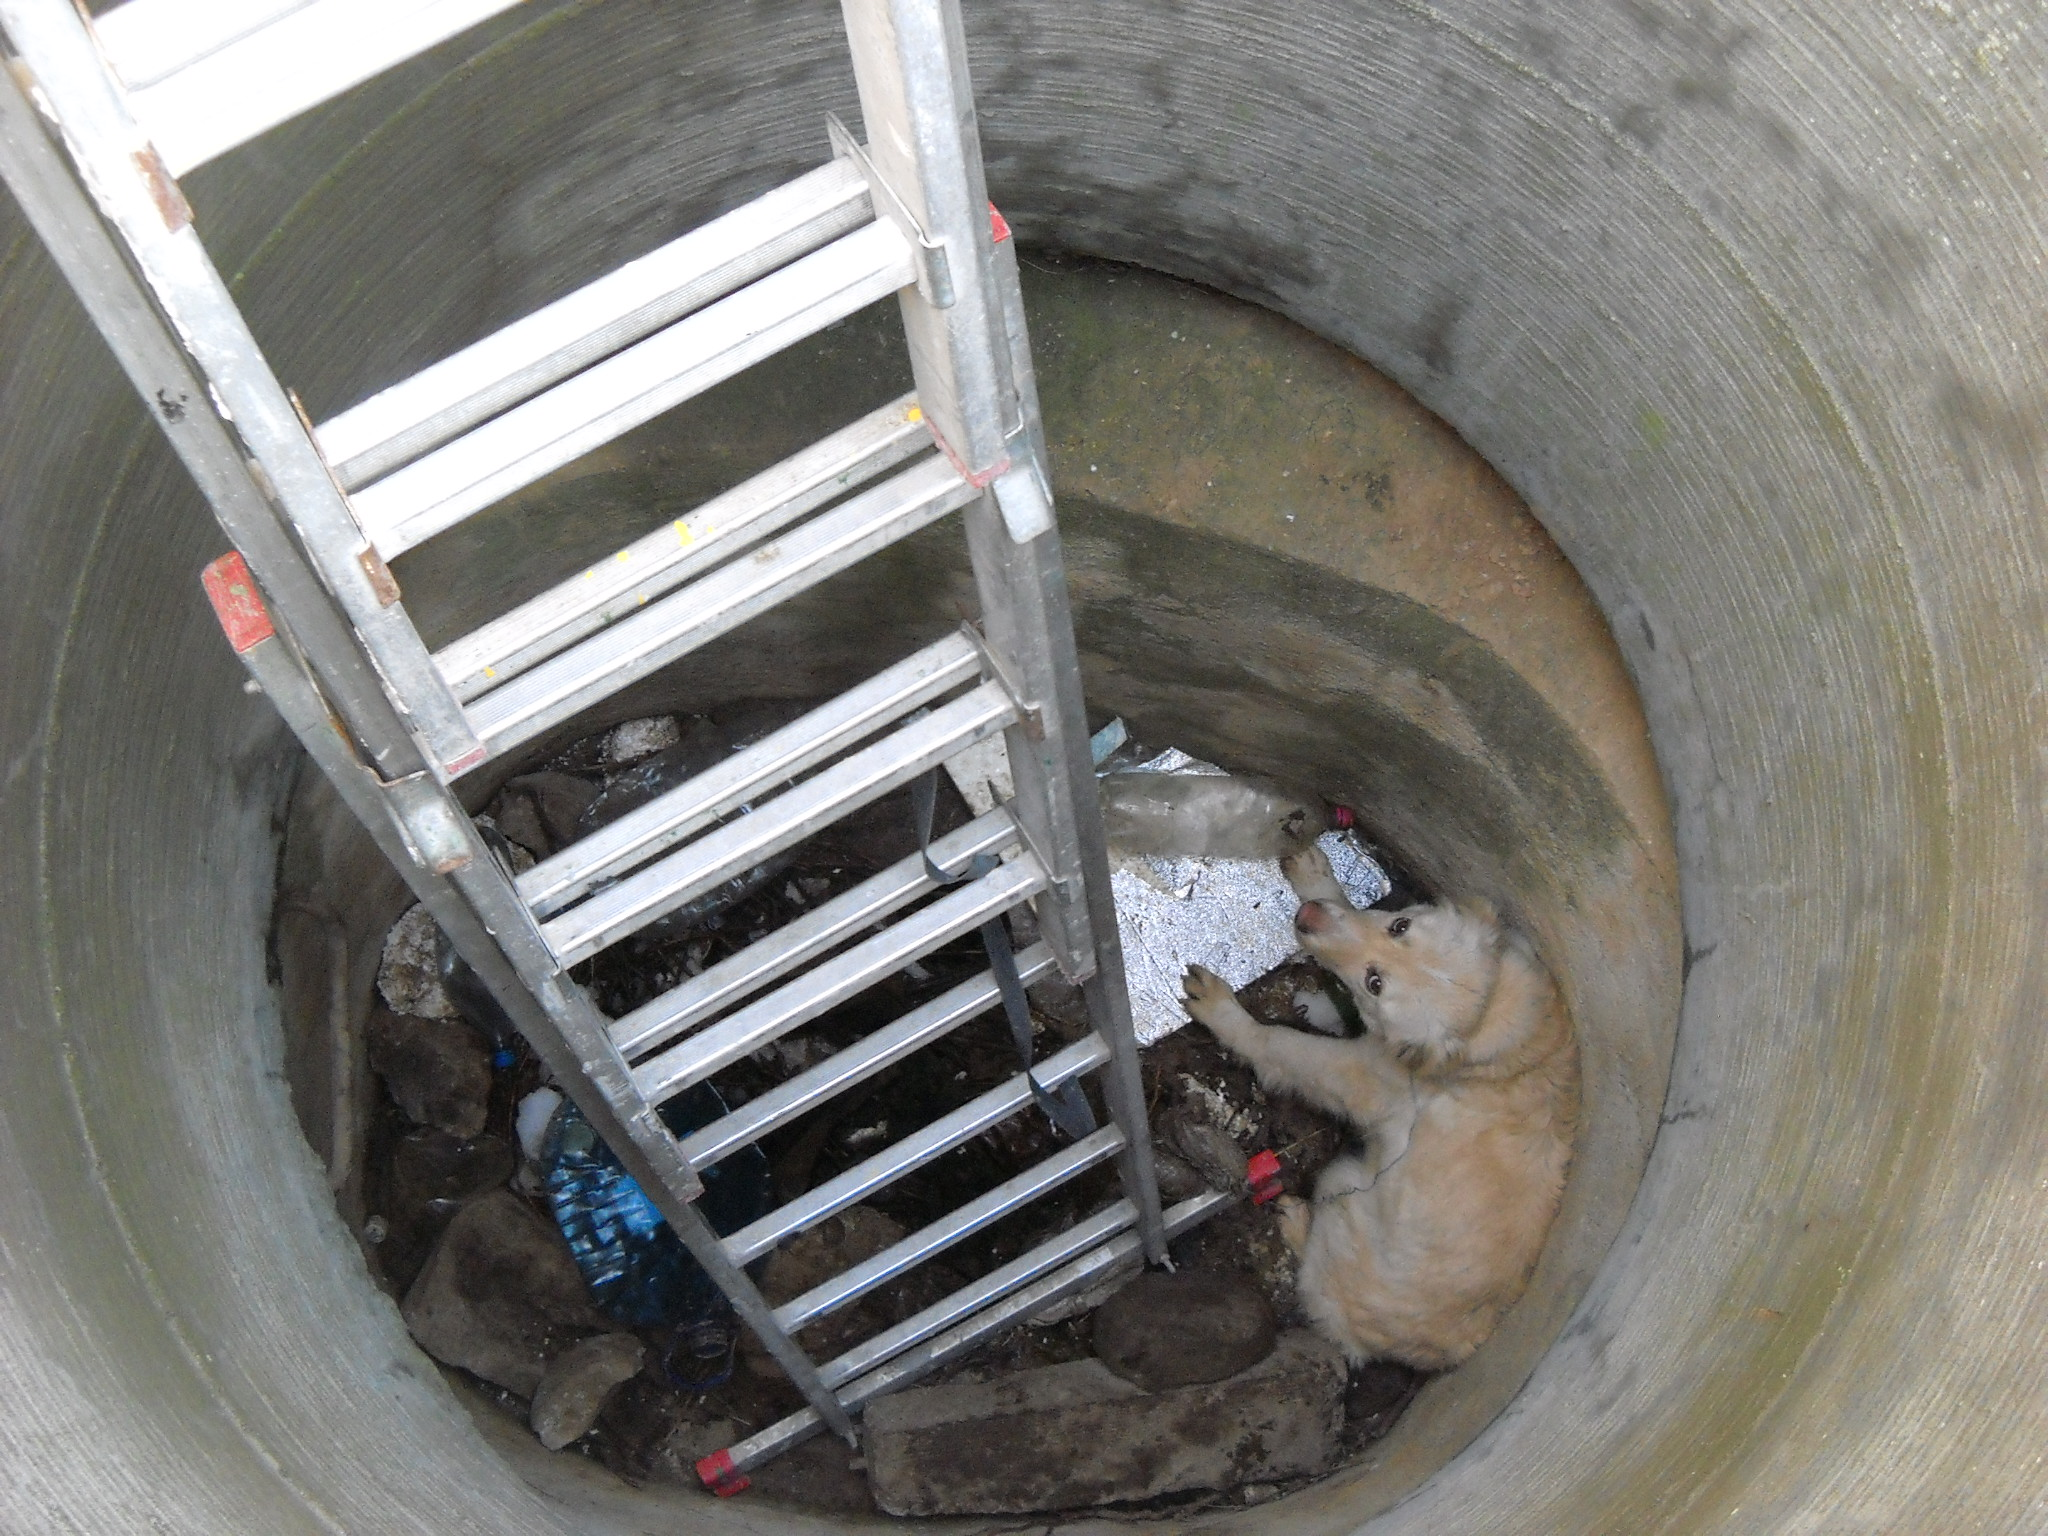 Dog Valentina  thrown in a Sewer   RO   2014